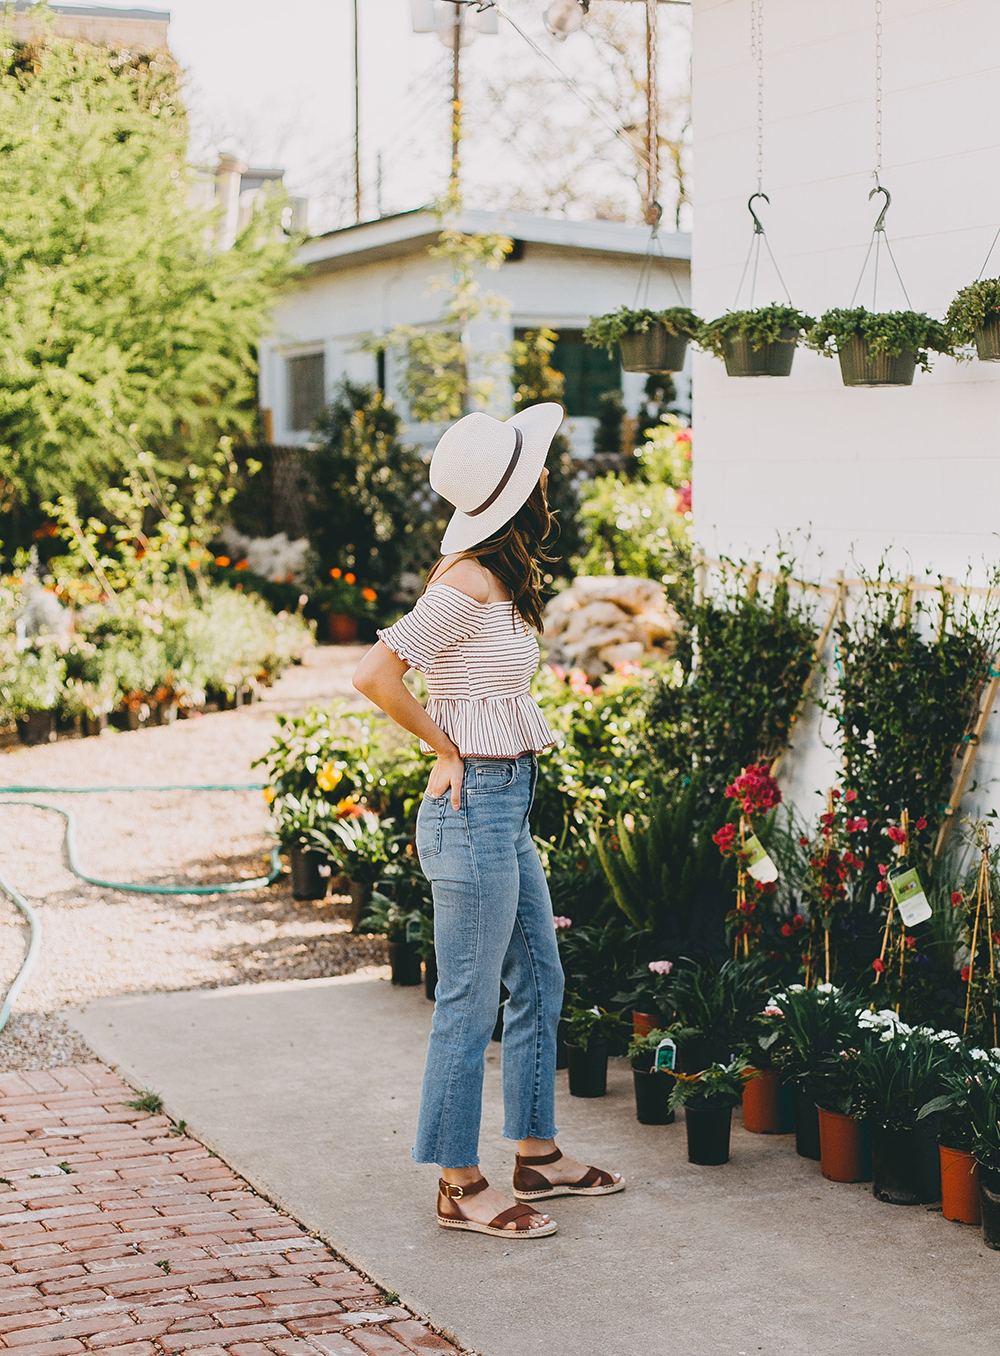 olivia-watson-austin-texas-fashion-lifestyle-blogger-plant-flower-shop-sole-society-espadrille-sandals-1